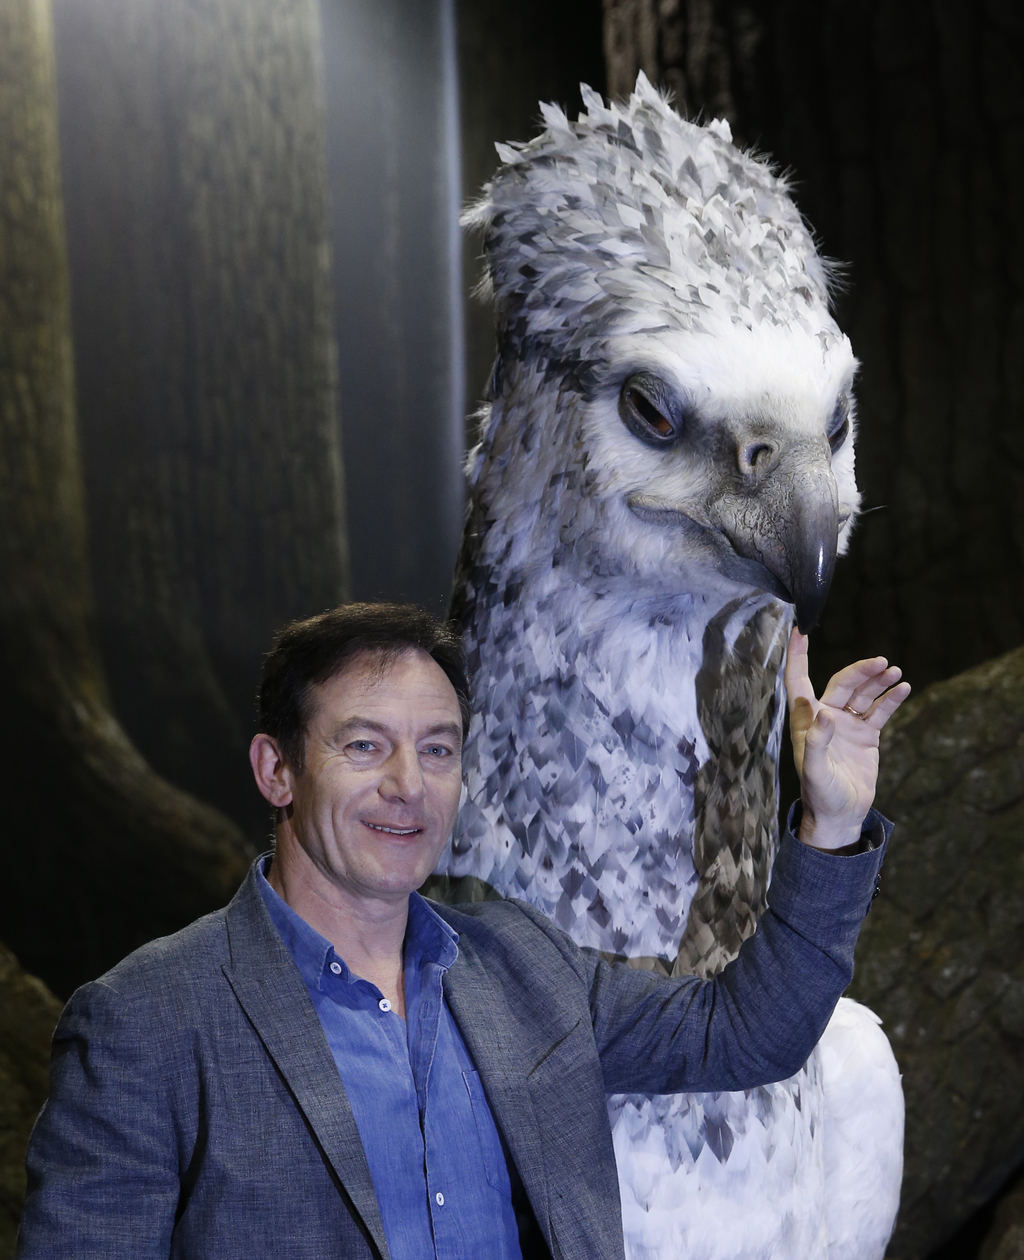 Actor Jason Isaacs poses for the media next to Buckbeak at a new extension called the 'Forbidden Forest' to the Warner Brothers studio ...